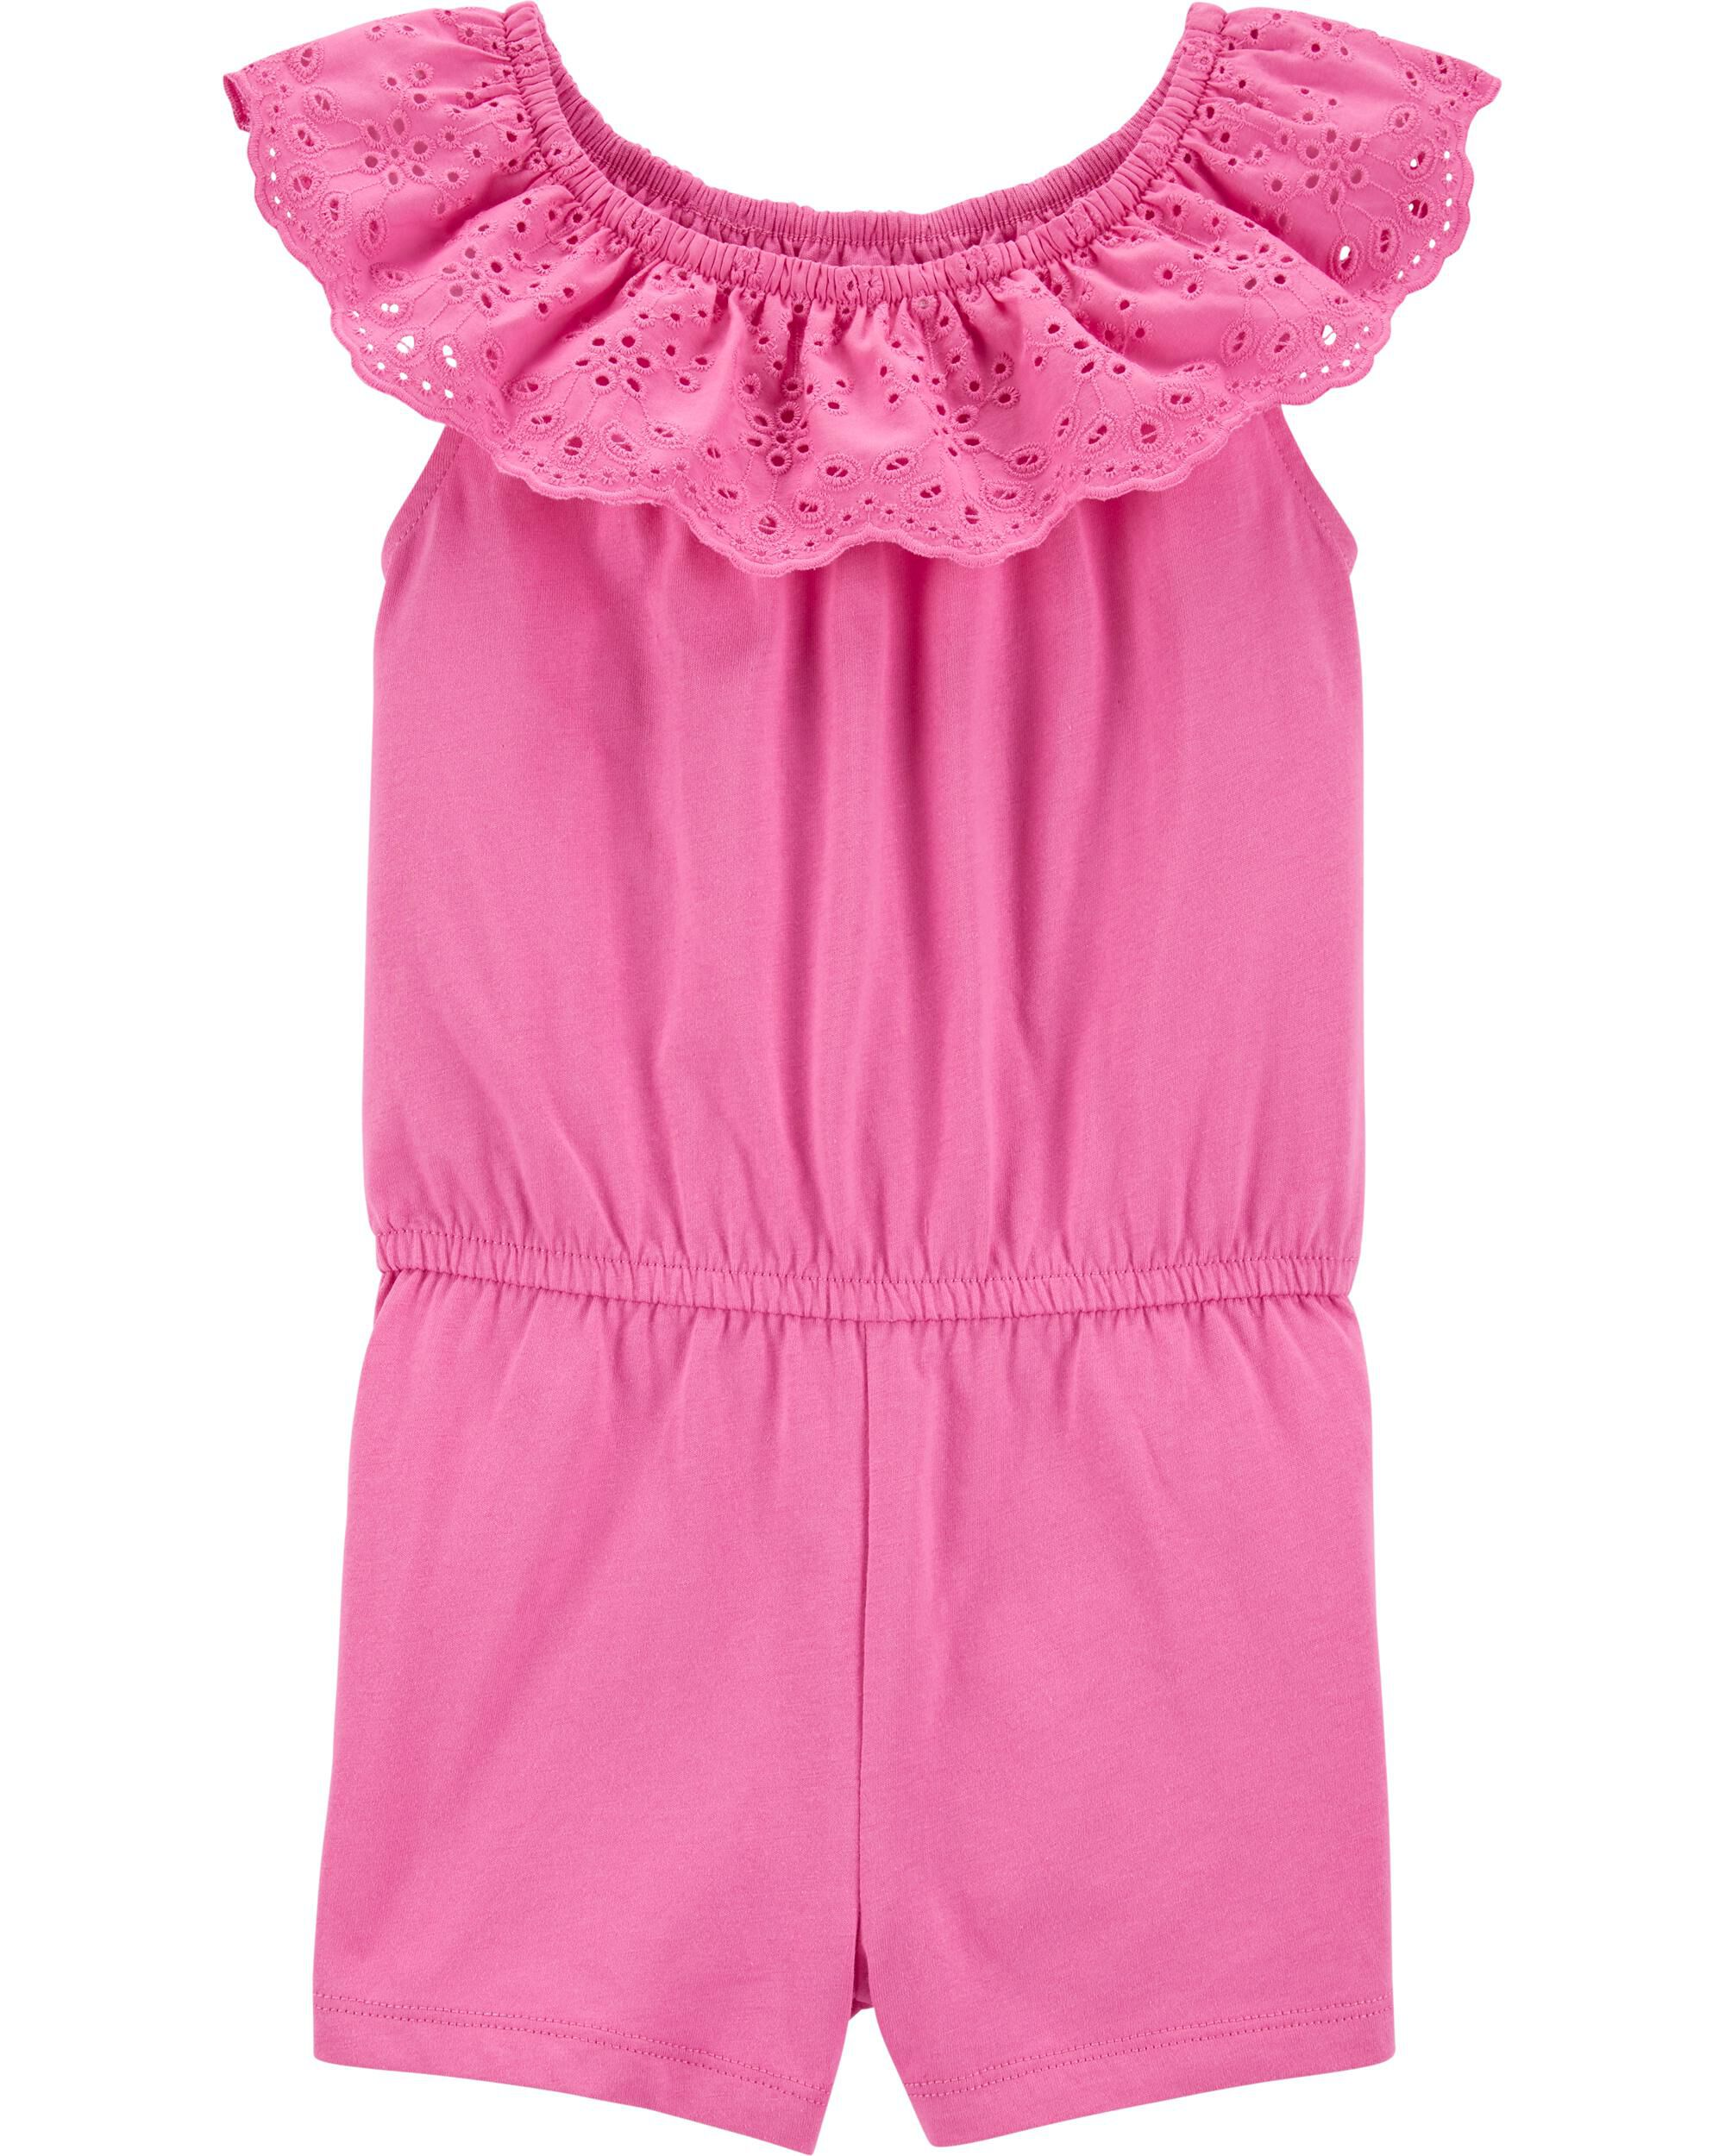 *CLEARANCE* Eyelet Romper